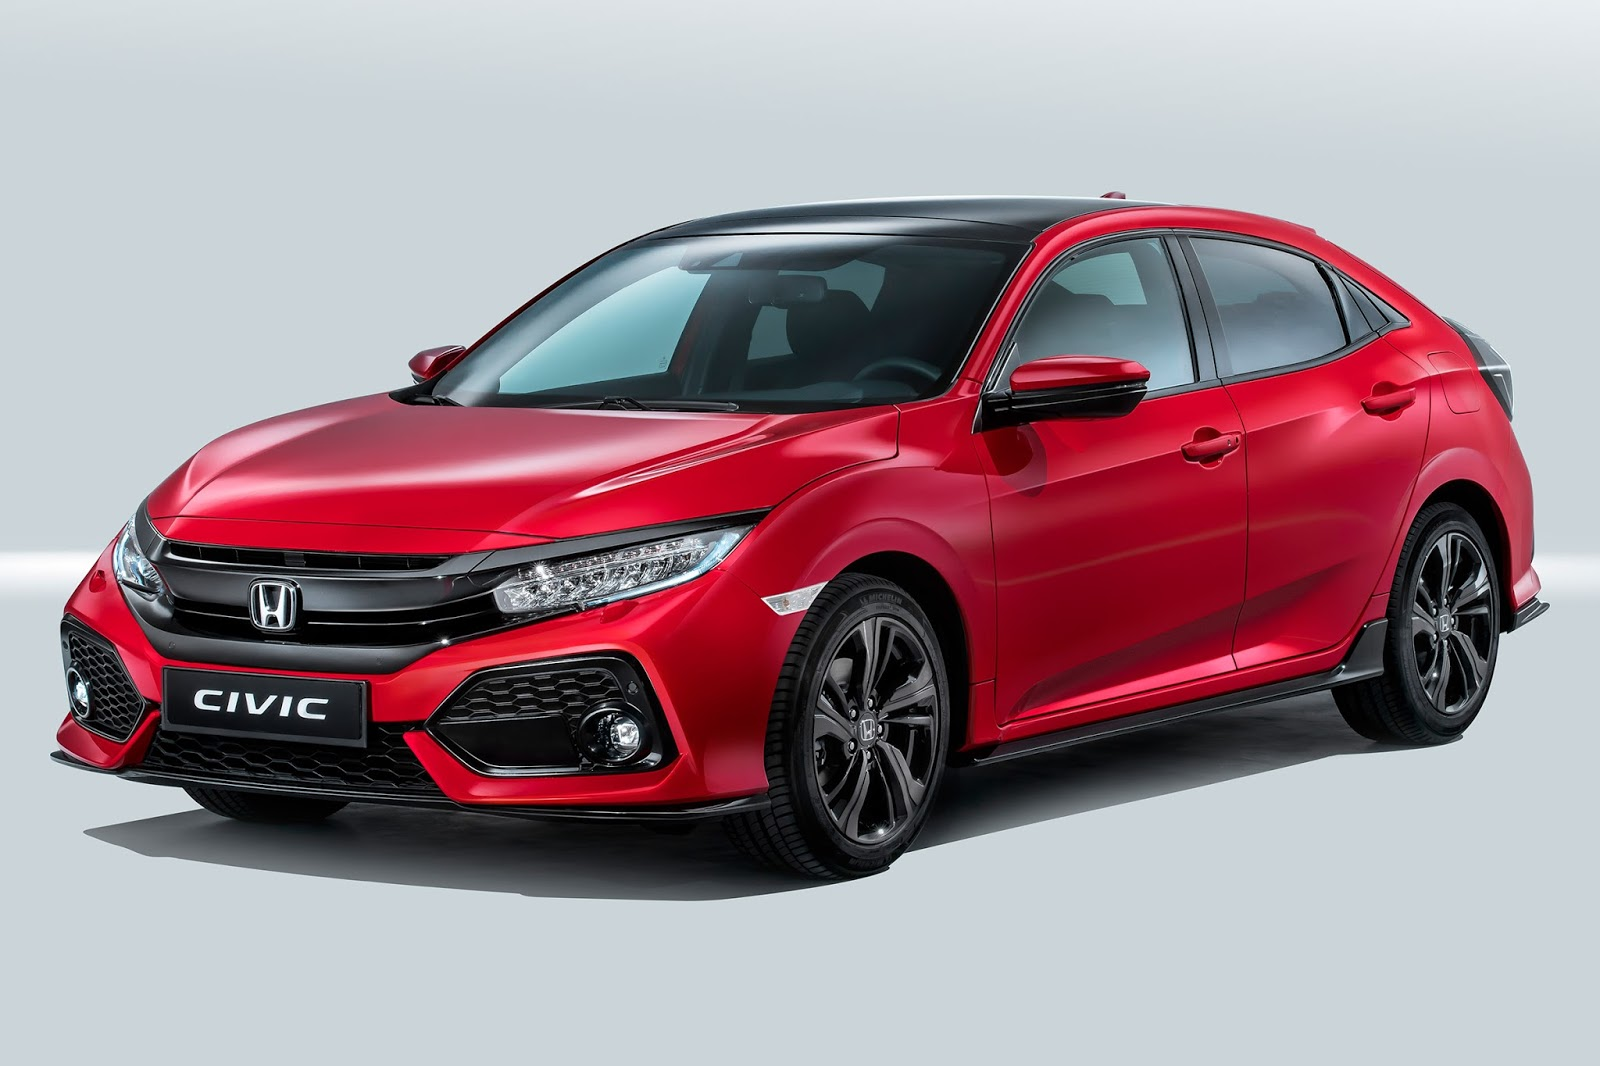 civic_hatchback-2